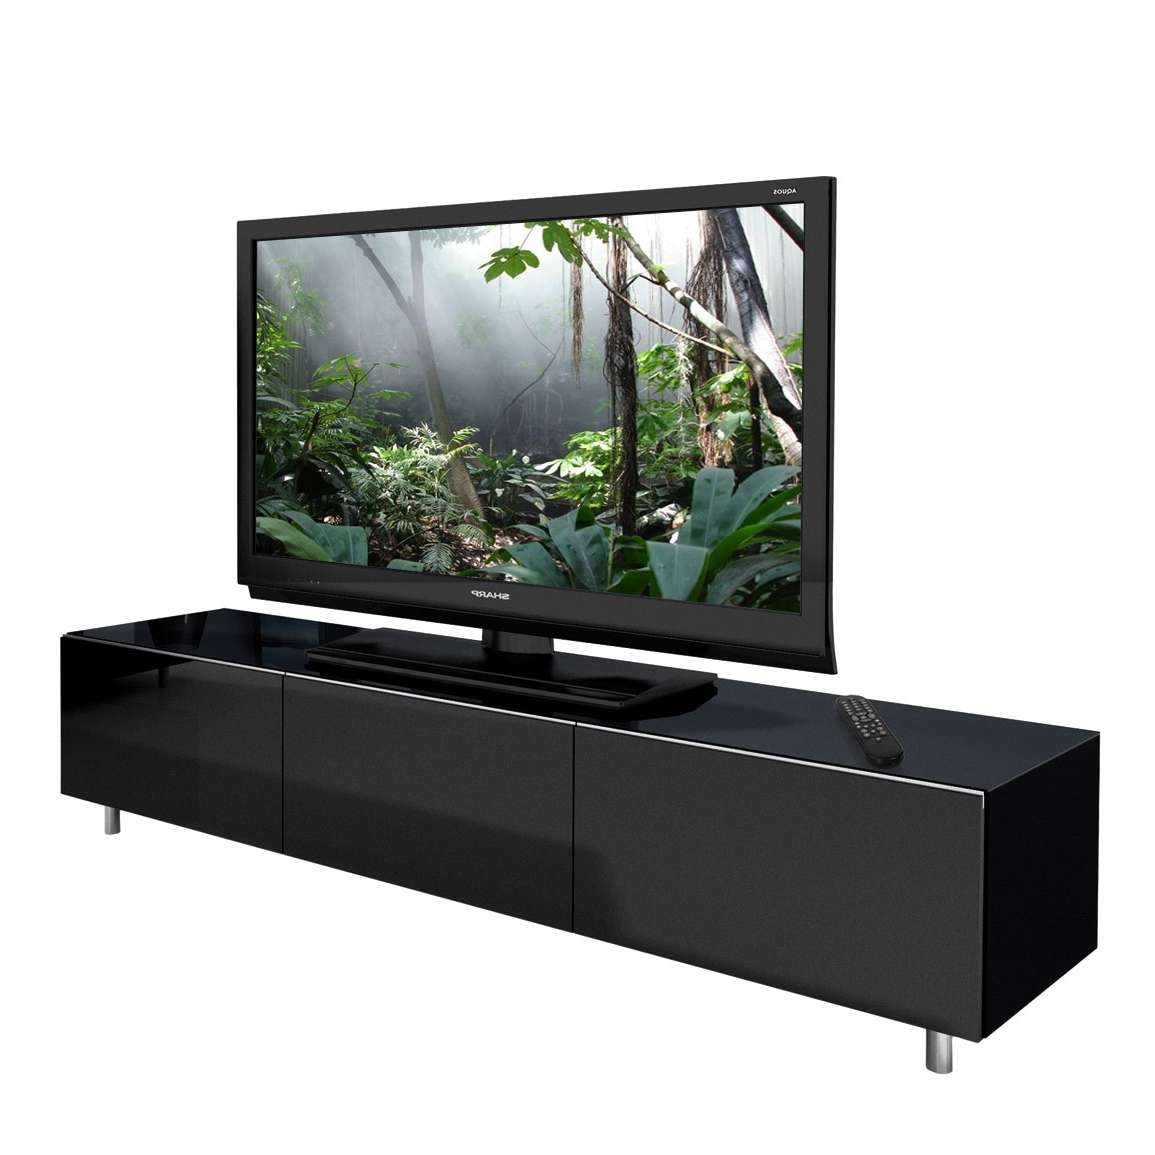 Spectral Just Racks Jrl1650s Gloss Black Tv Cabinet – Just Racks Within Shiny Black Tv Stands (View 2 of 15)